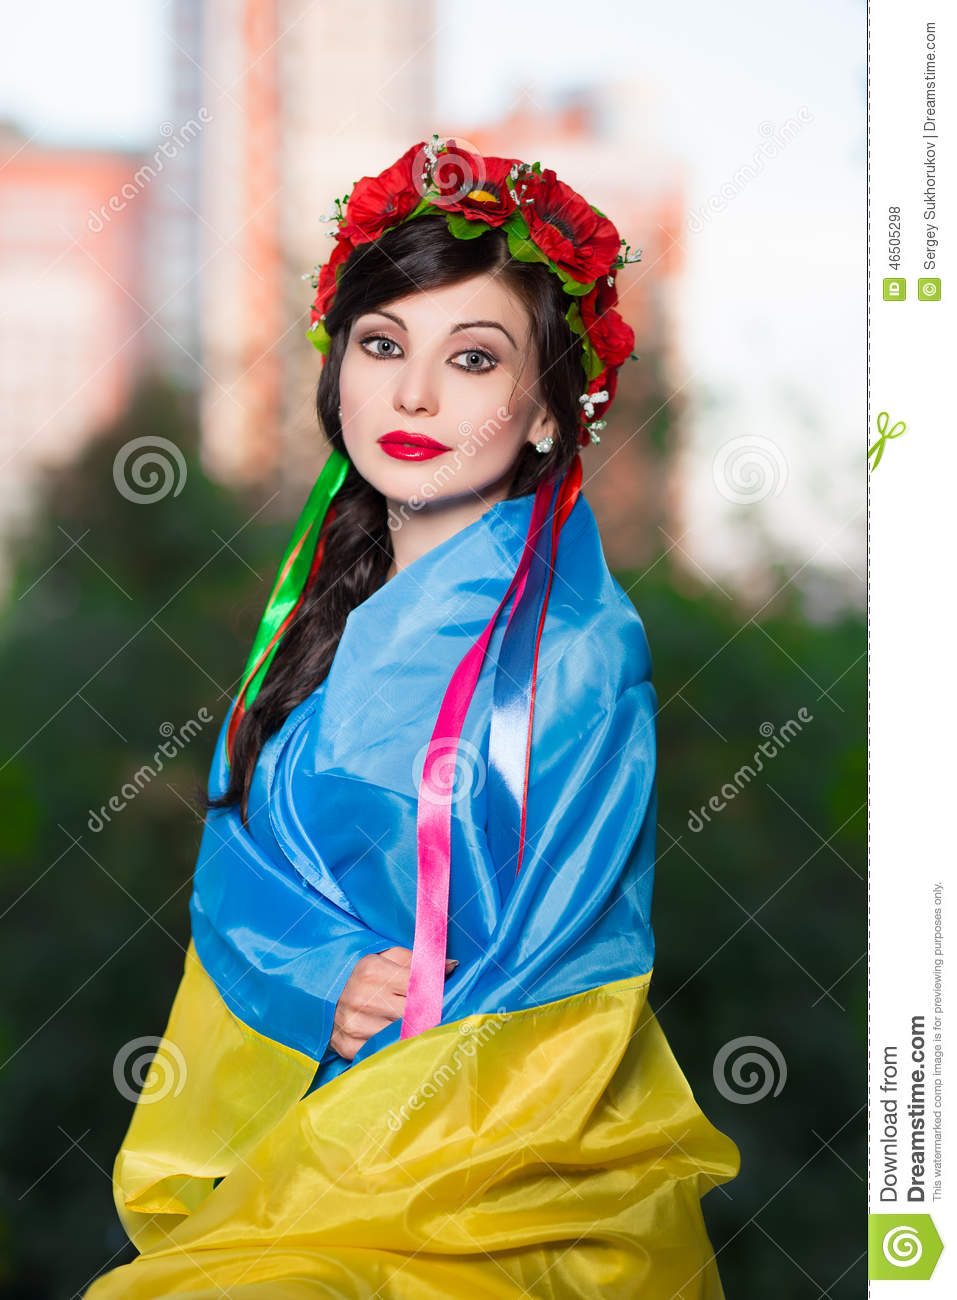 Free Pretty Ukrainian Women